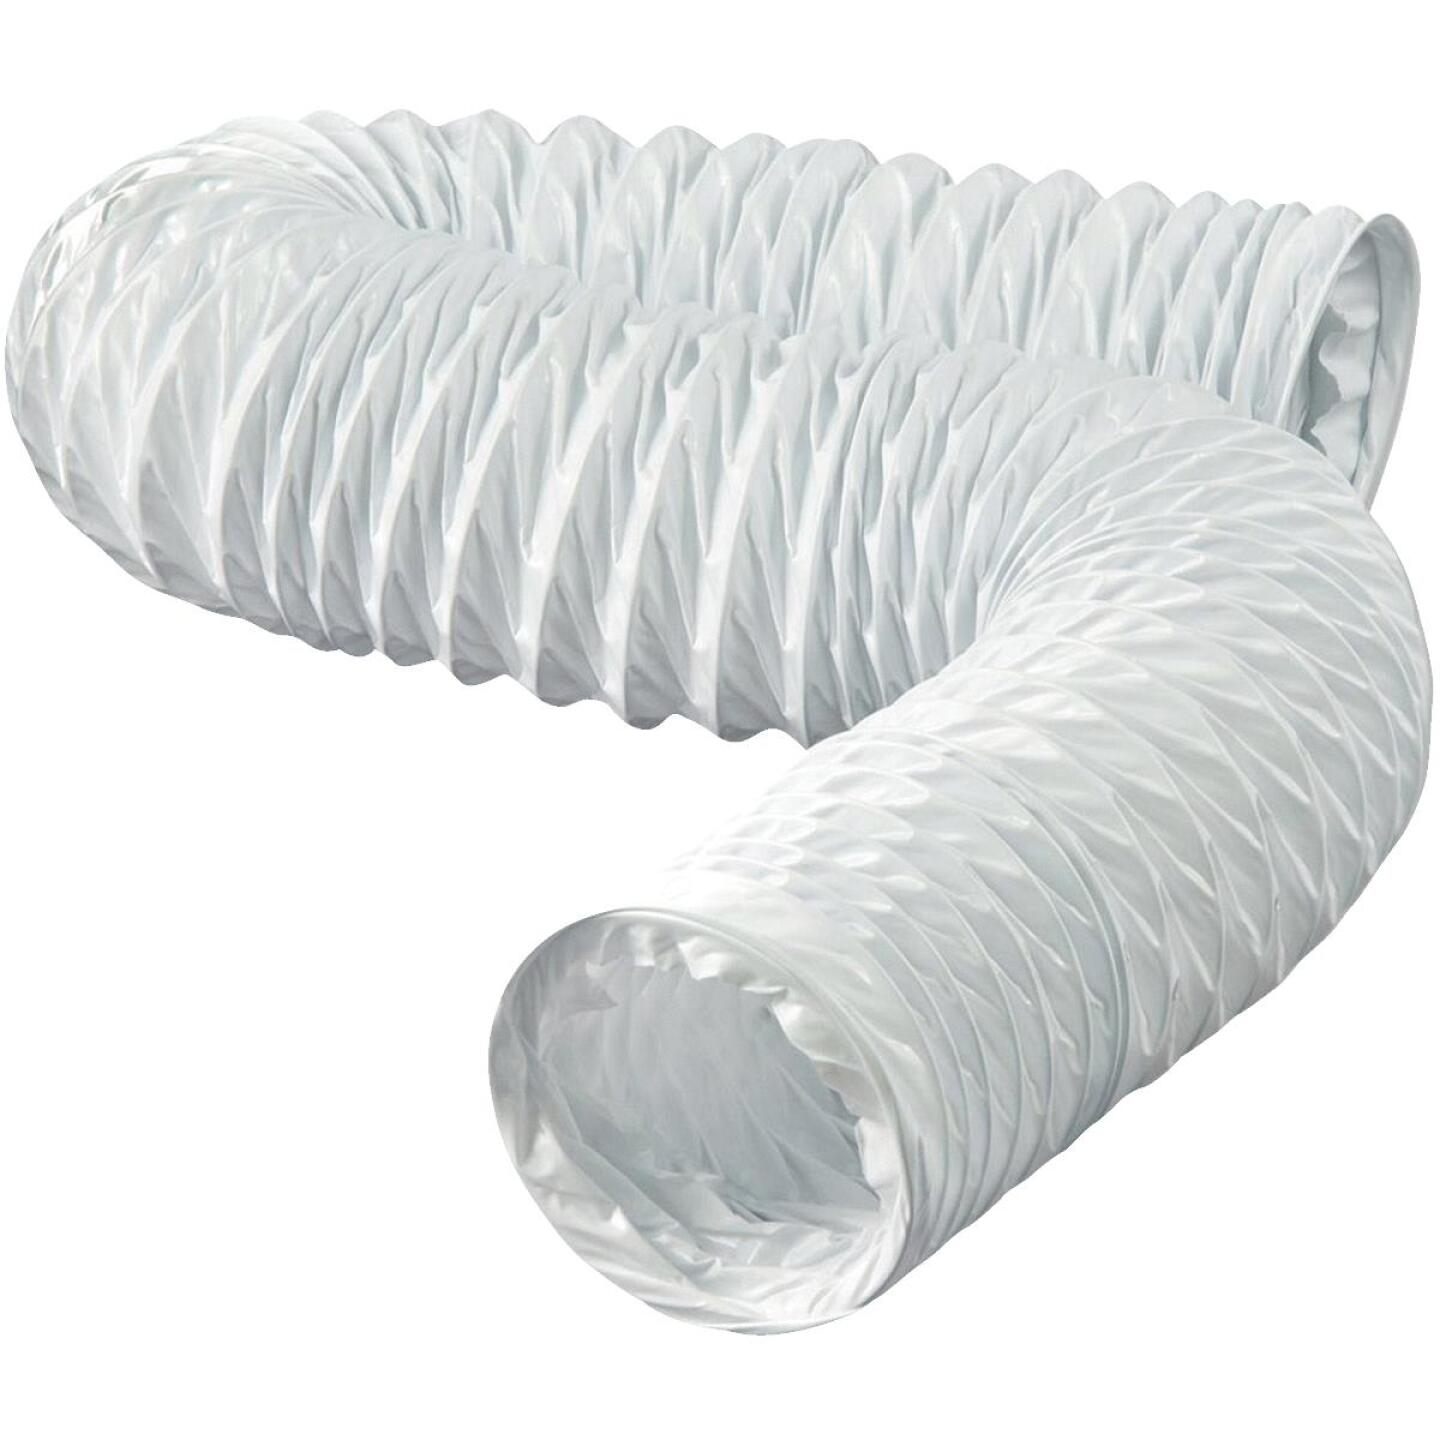 Dundas Jafine 3 In. Dia x 8 Ft. L White Vinyl Flexible Ducting Image 1